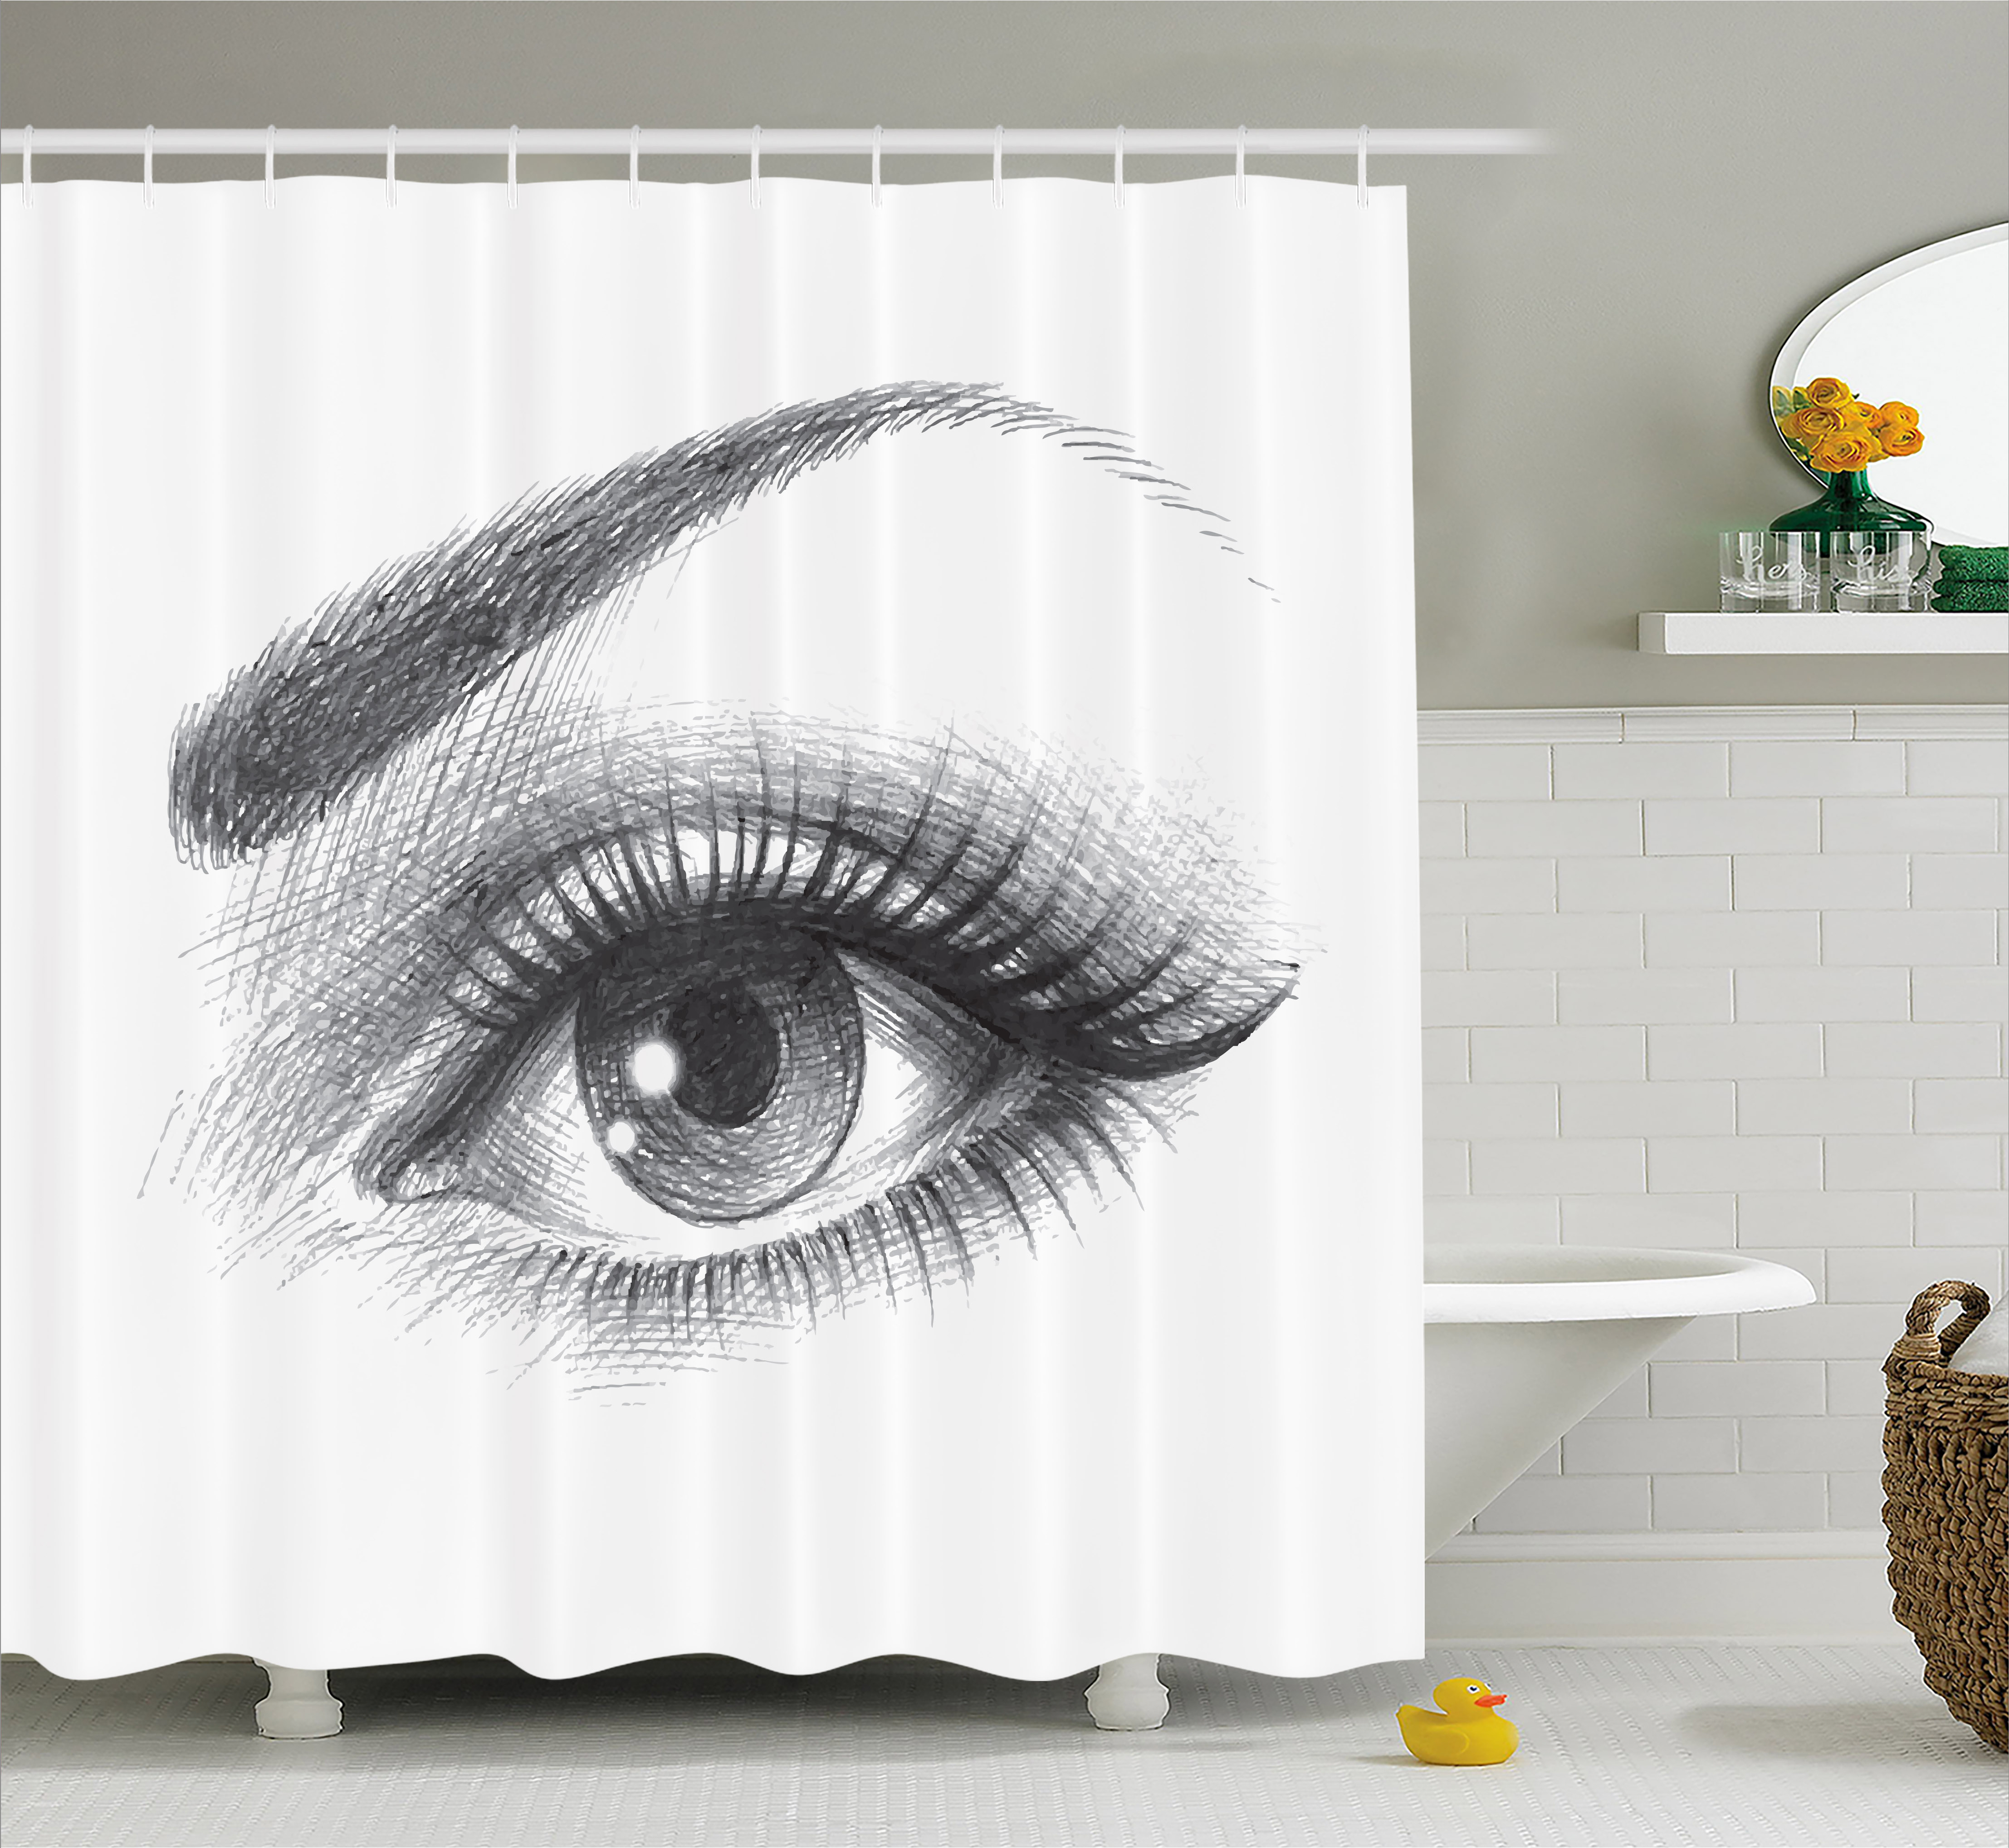 Eye Shower Curtain, Pencil Drawing Artwork of a Staring Female Eye with Long Lashes and a Curvy Eyebrow, Fabric Bathroom Set with Hooks, Grey White, by Ambesonne